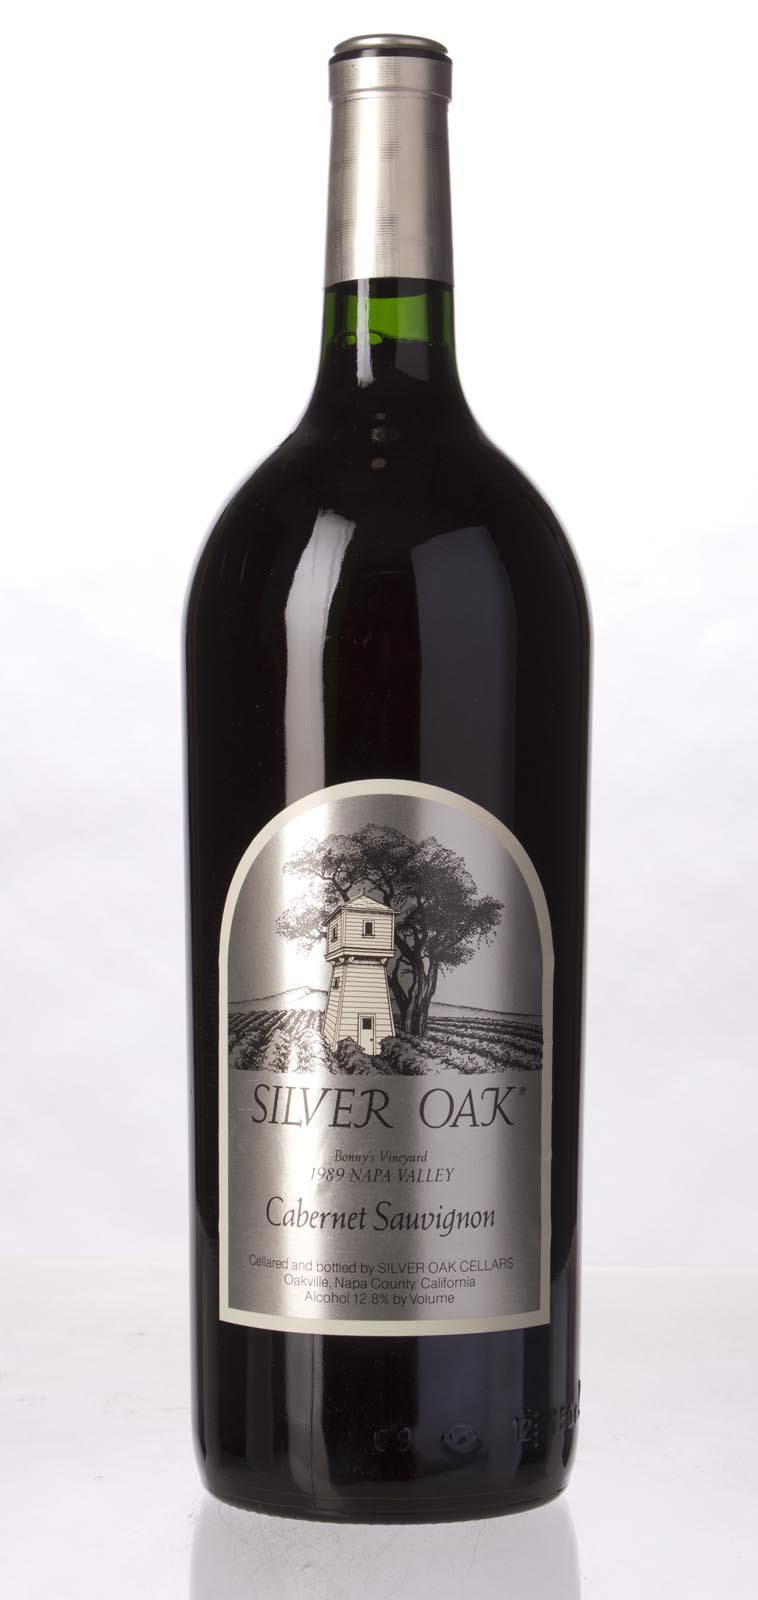 Silver Oak Cabernet Sauvignon Bonny`s Vineyard 1989, 1.5L () from The BPW - Merchants of rare and fine wines.